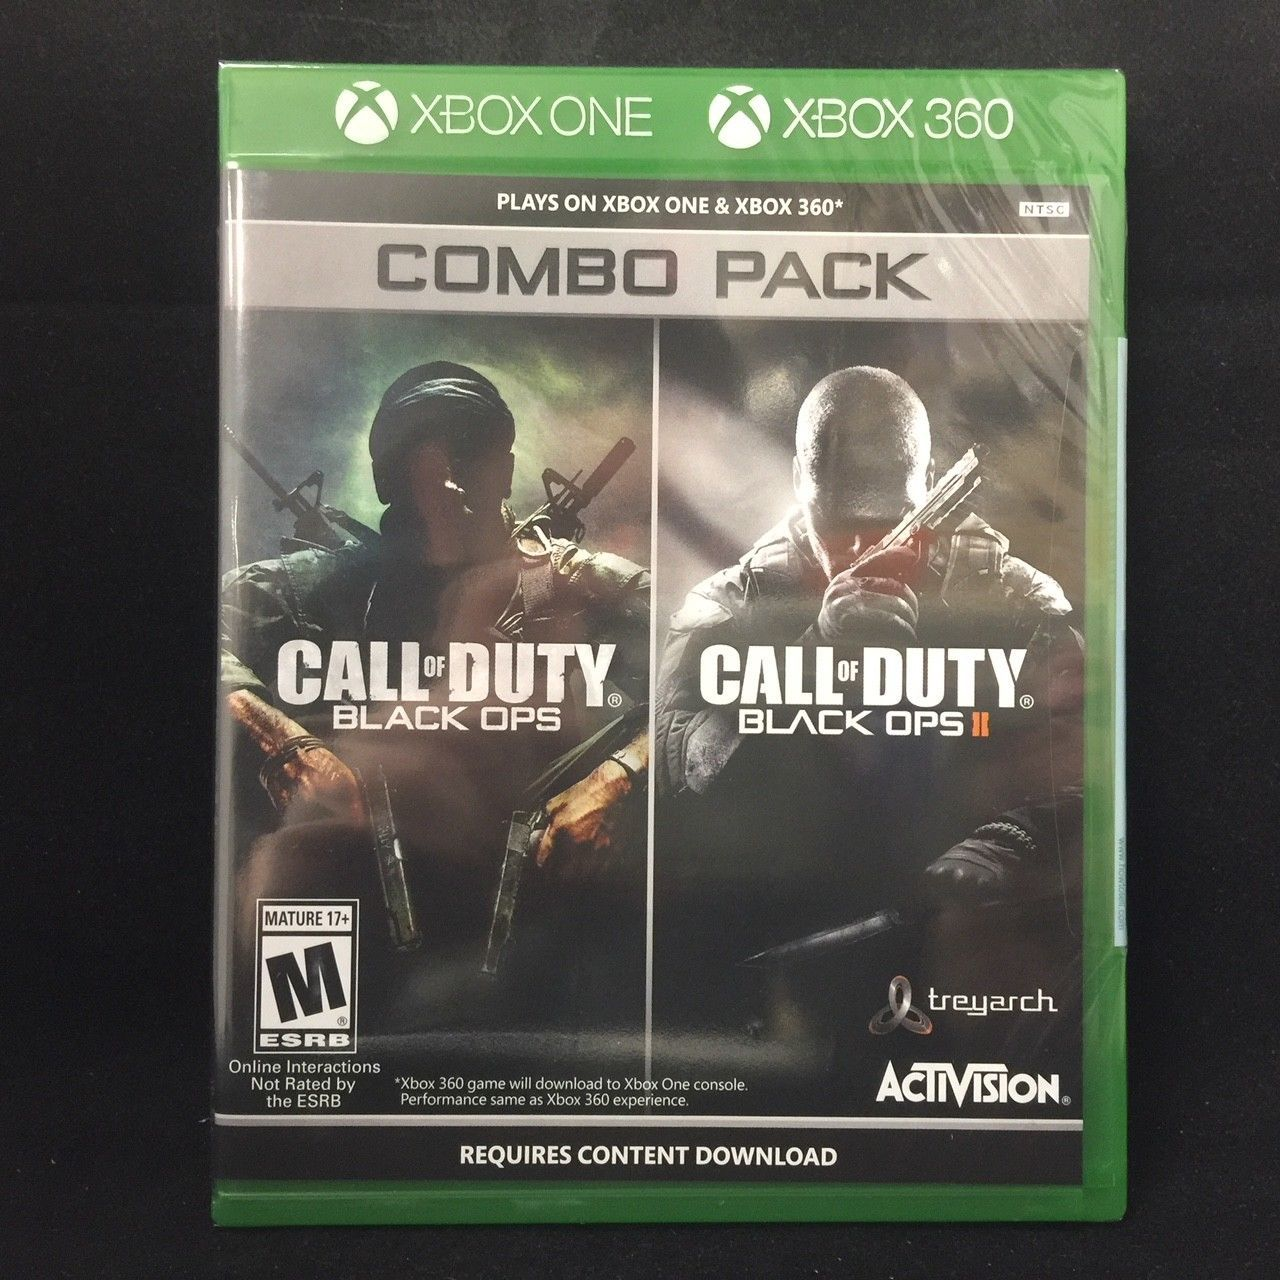 Call Of Duty Black Ops 1 Amp 2 Play On Xbox One Xbox 360